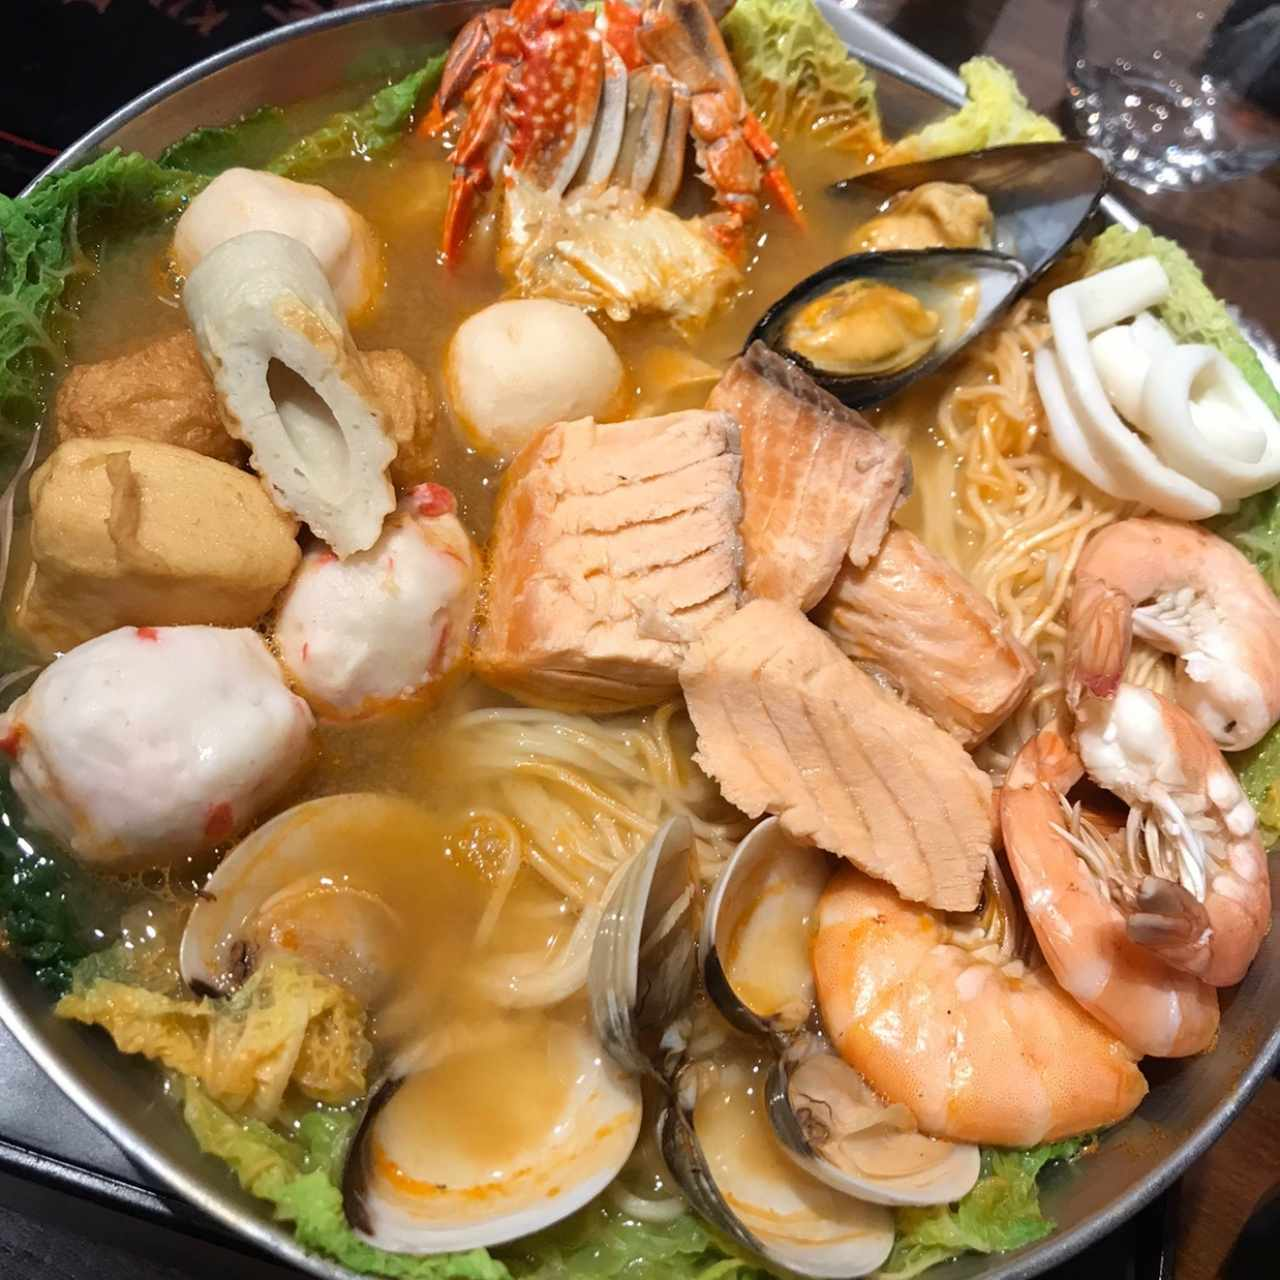 Mao Cai Noodles with Seafood, Vegetables and Meats